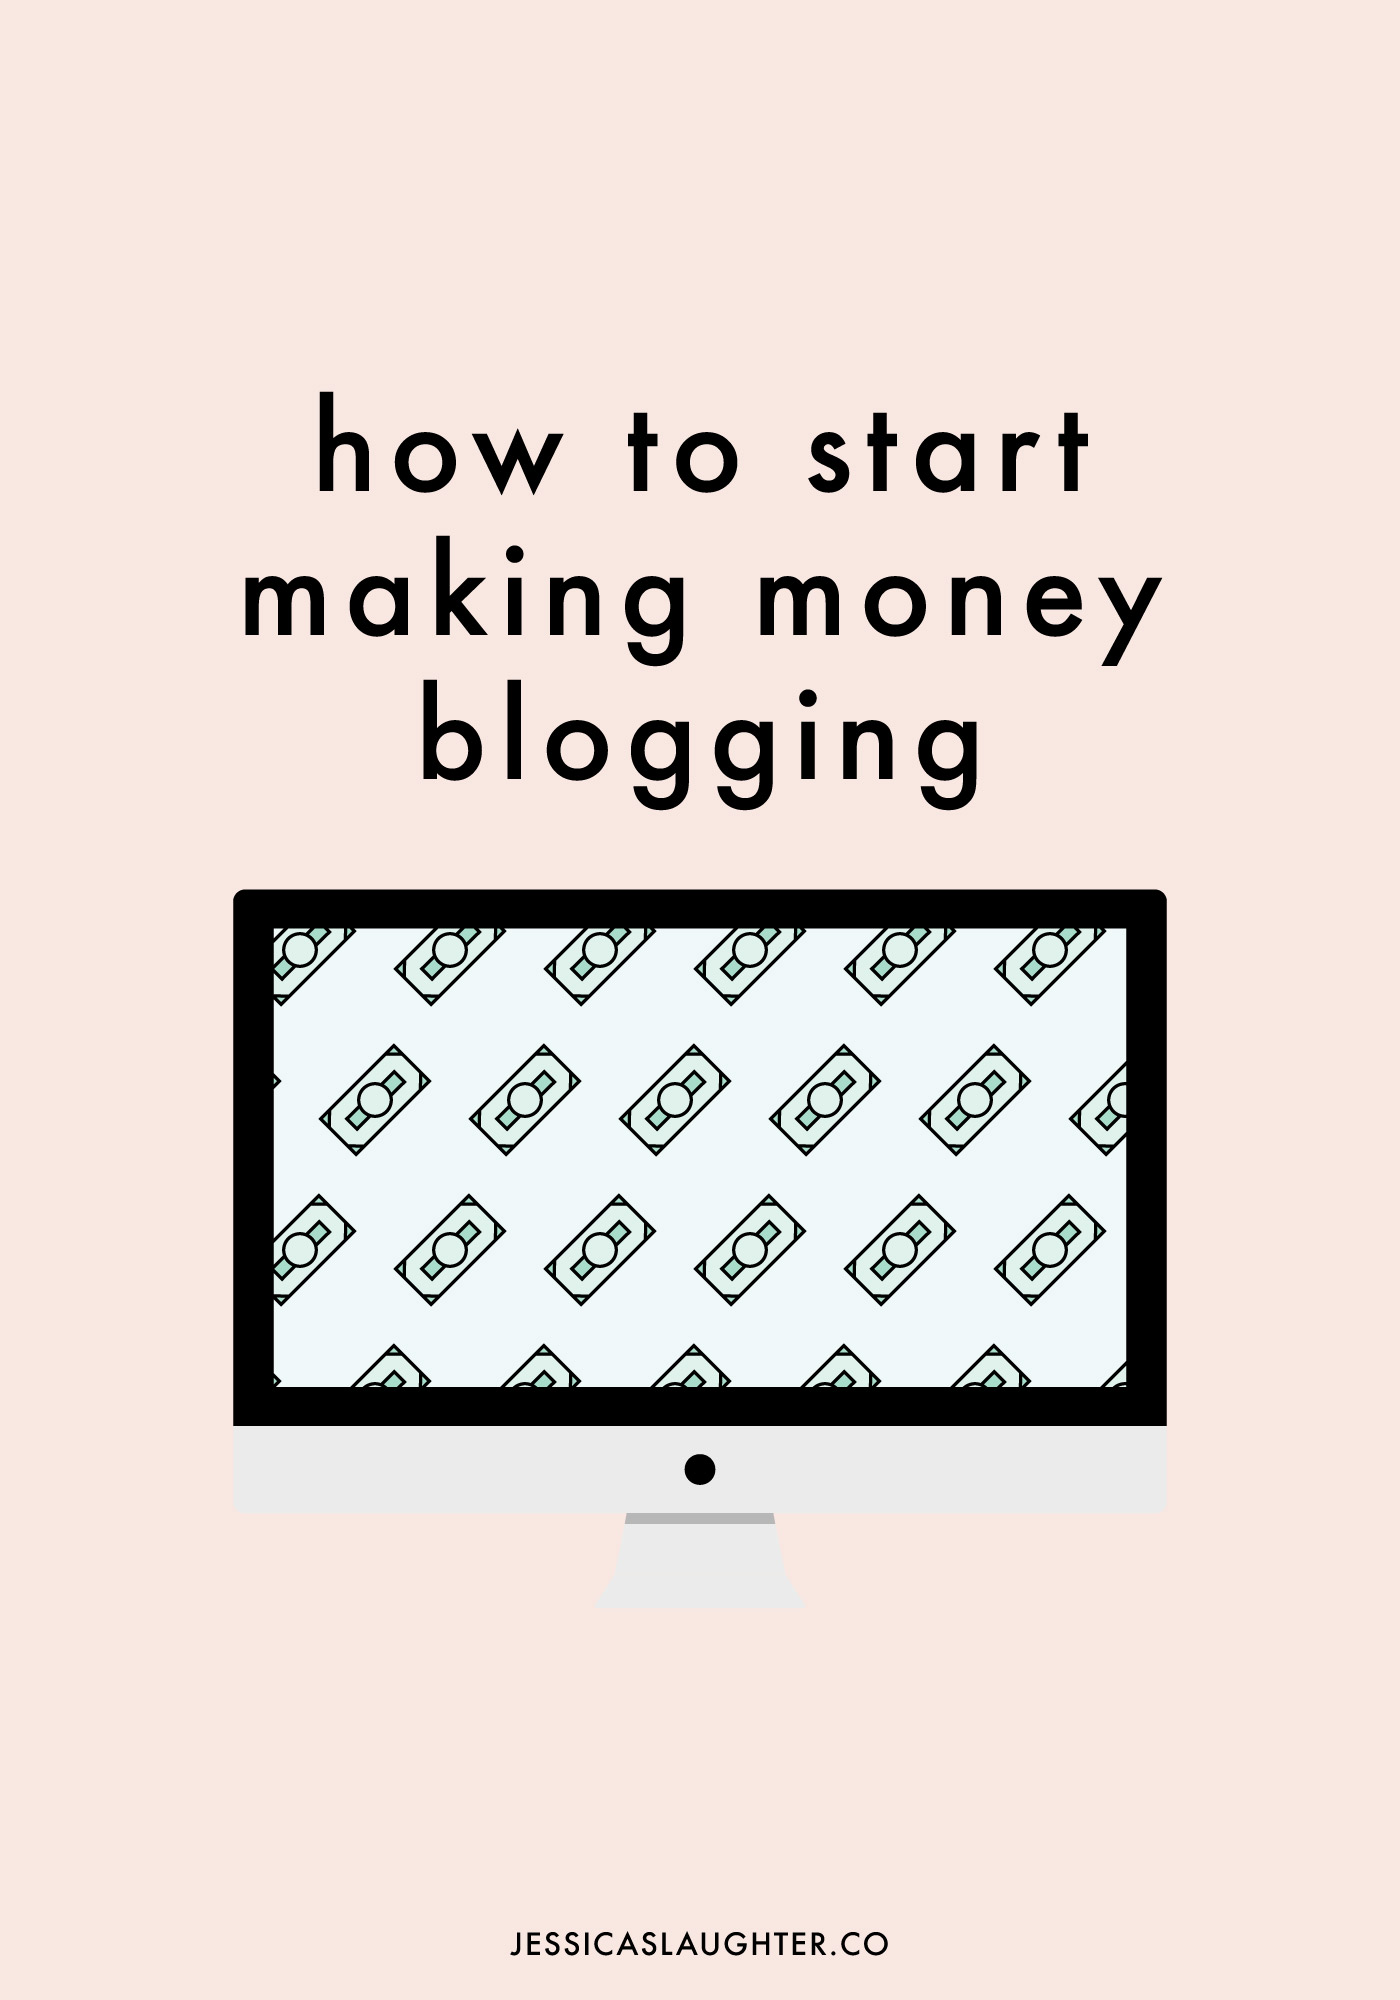 I piled in absolutely everything I know about monetizing a blog into this huge post geared towards all bloggers, no matter what your traffic numbers are!